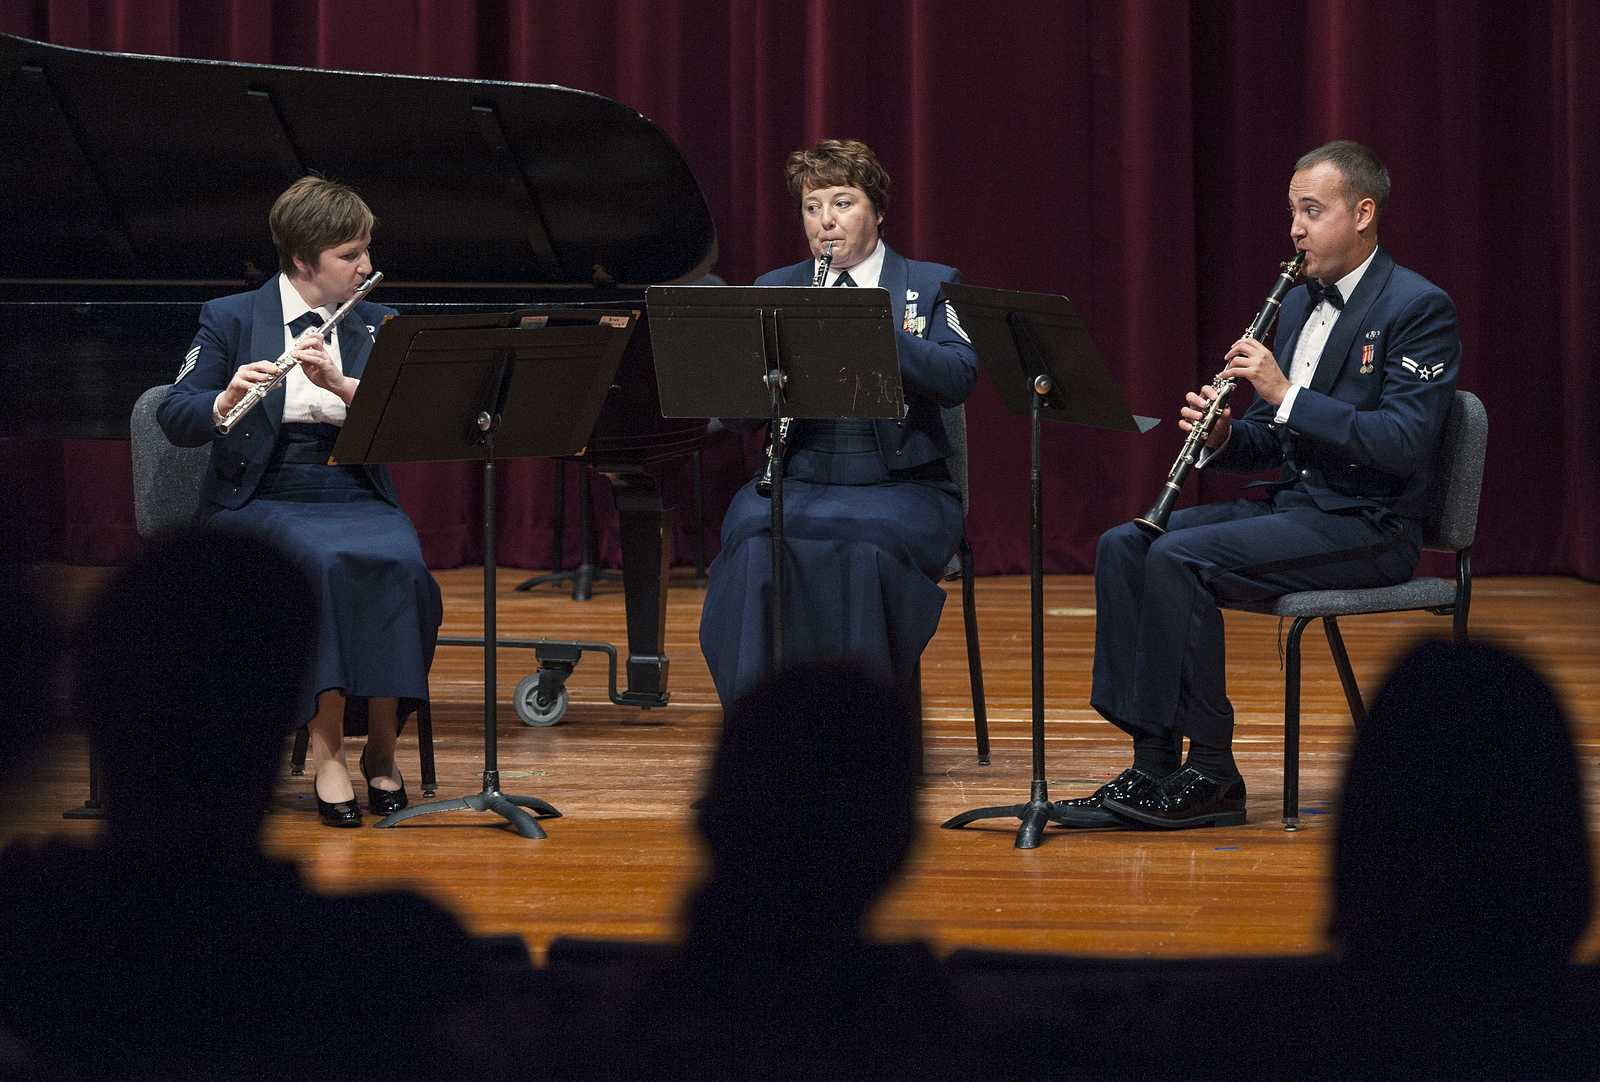 Technical Sergeant Elizabeth Honaker (Flute), Master Sergeant Coreen Levin (Oboe) and Airman First Class Brian Wilmer (Clarinet) play Divertimento for Flute, Oboe and Clarinet, Op. 37 by Sir Malcolm Arnold at a performance by The United States Air Force Band of the Golden West in Knuth Hall. Friday, September 27, 2013. Photo by Benjamin Kamps / Xpress